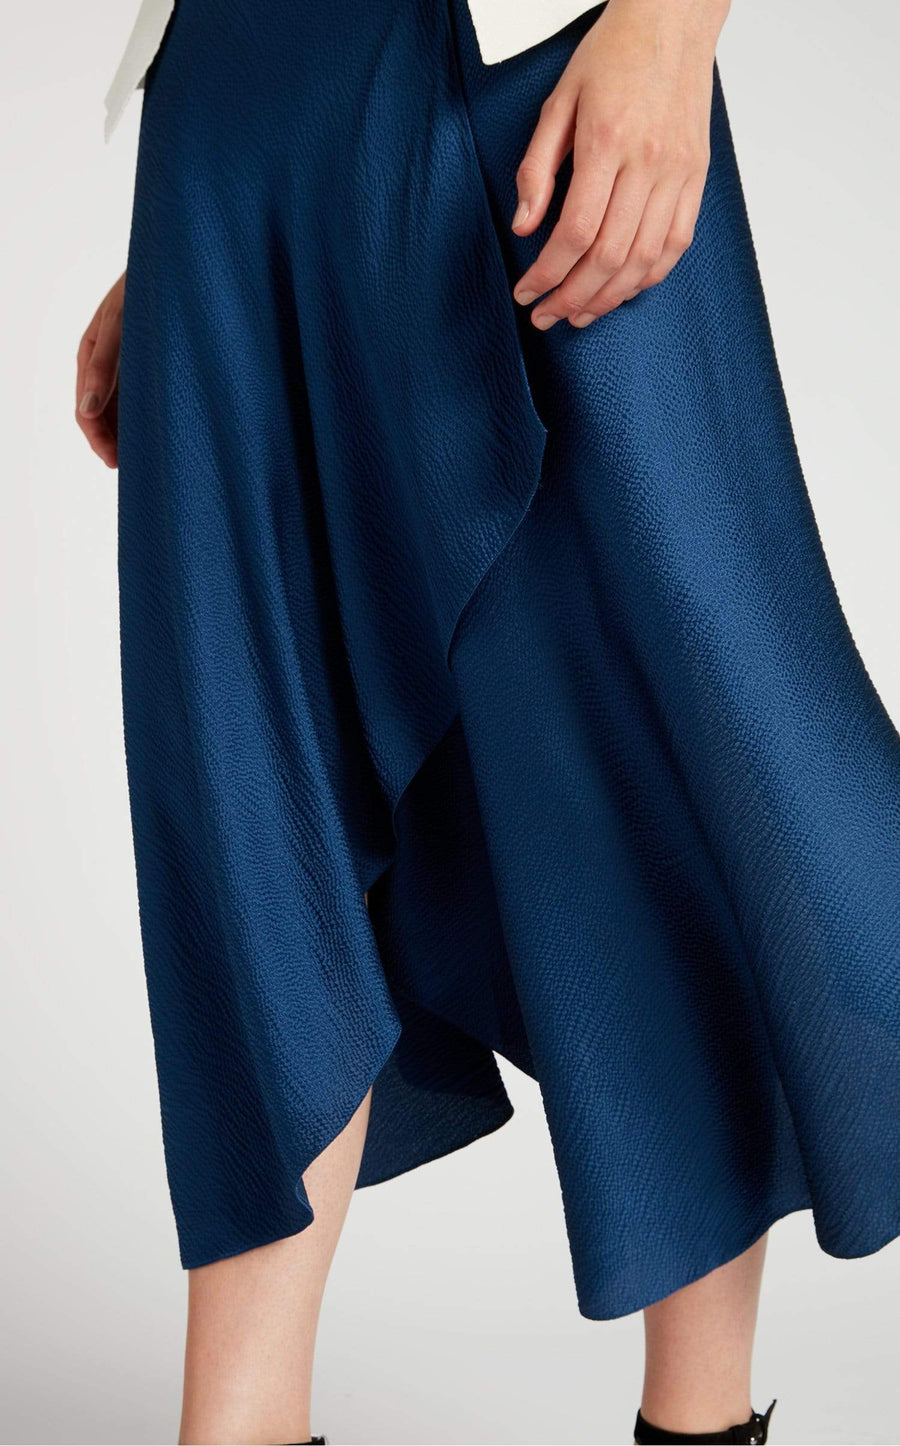 Hurst Skirt In Ultramarine/Navy from Roland Mouret